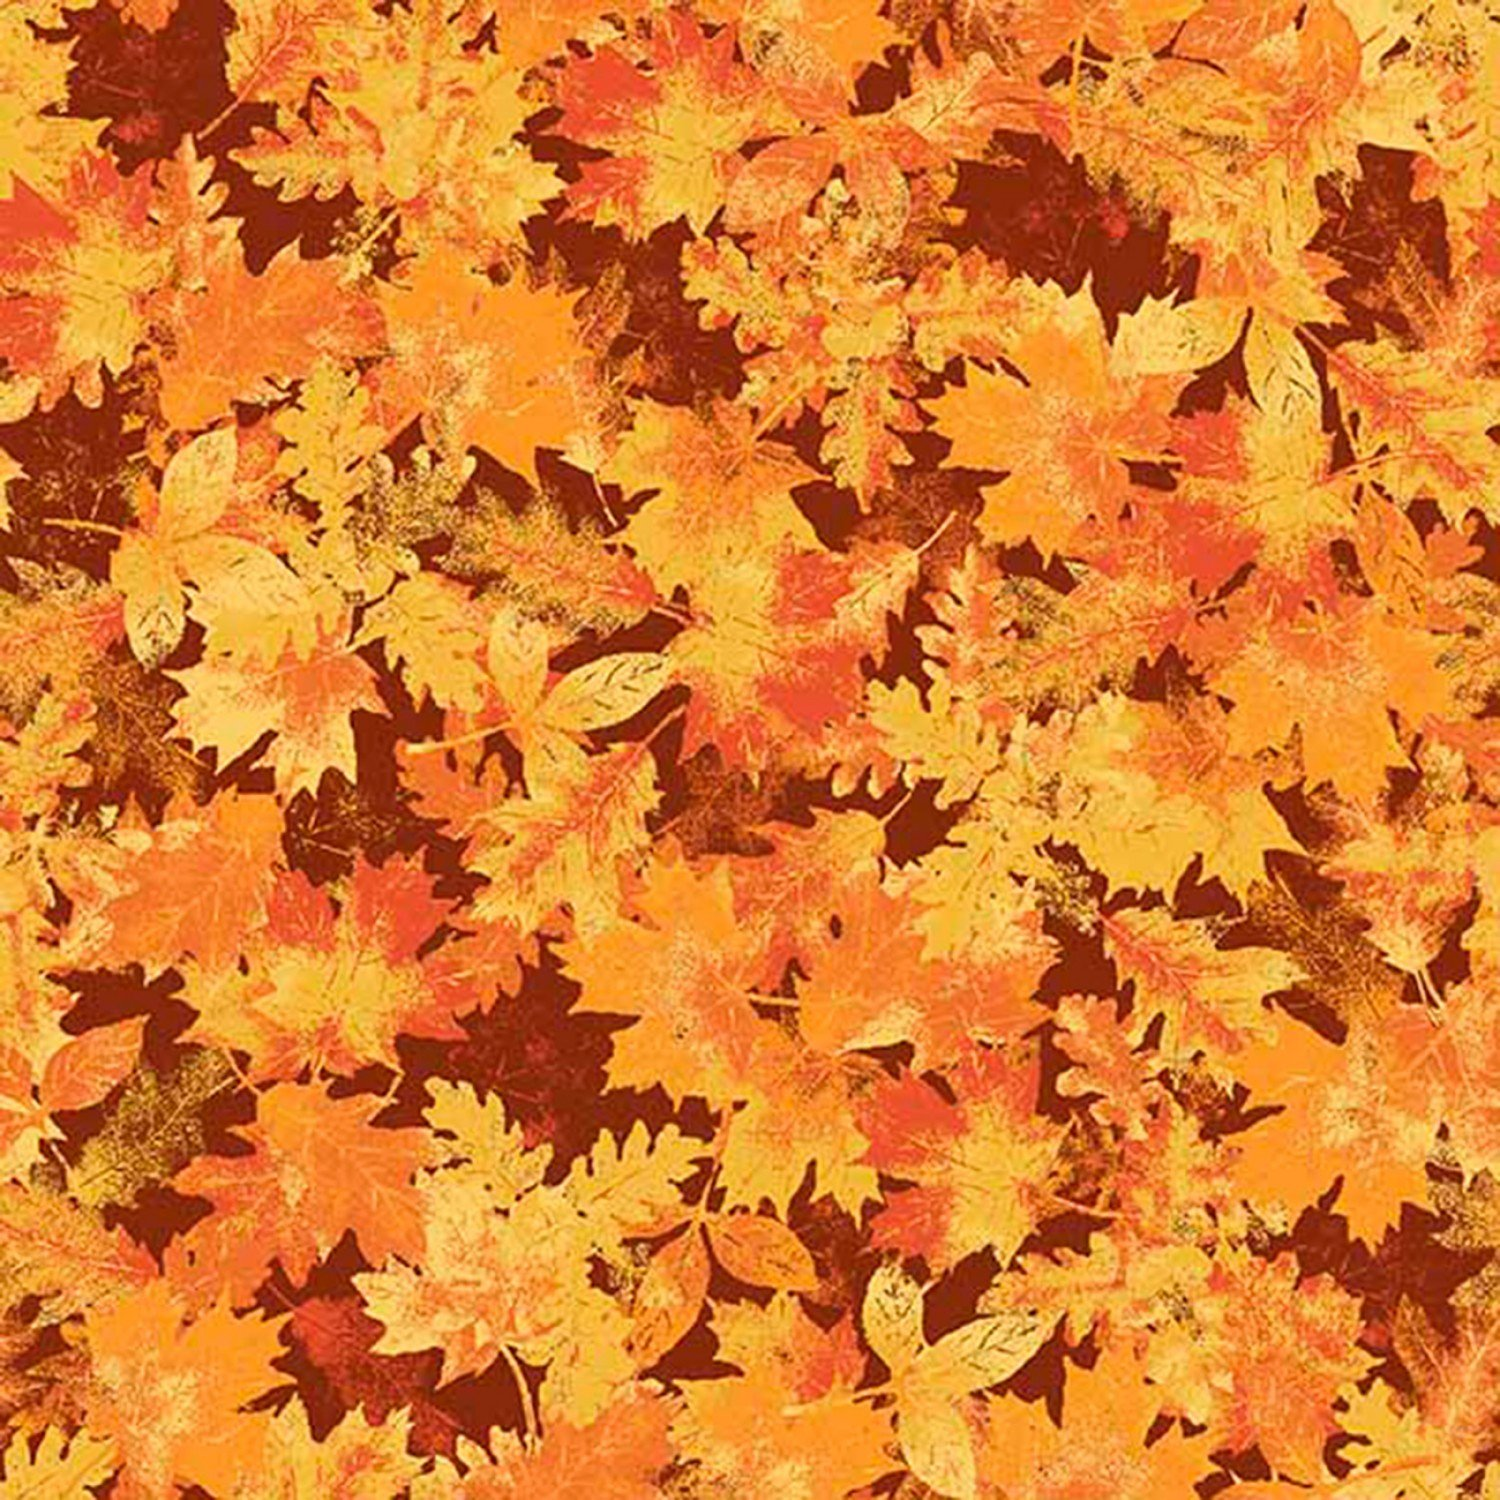 Harvest Fall Leaves Cotton Fabric from Springs Creative 44 Inches Wide